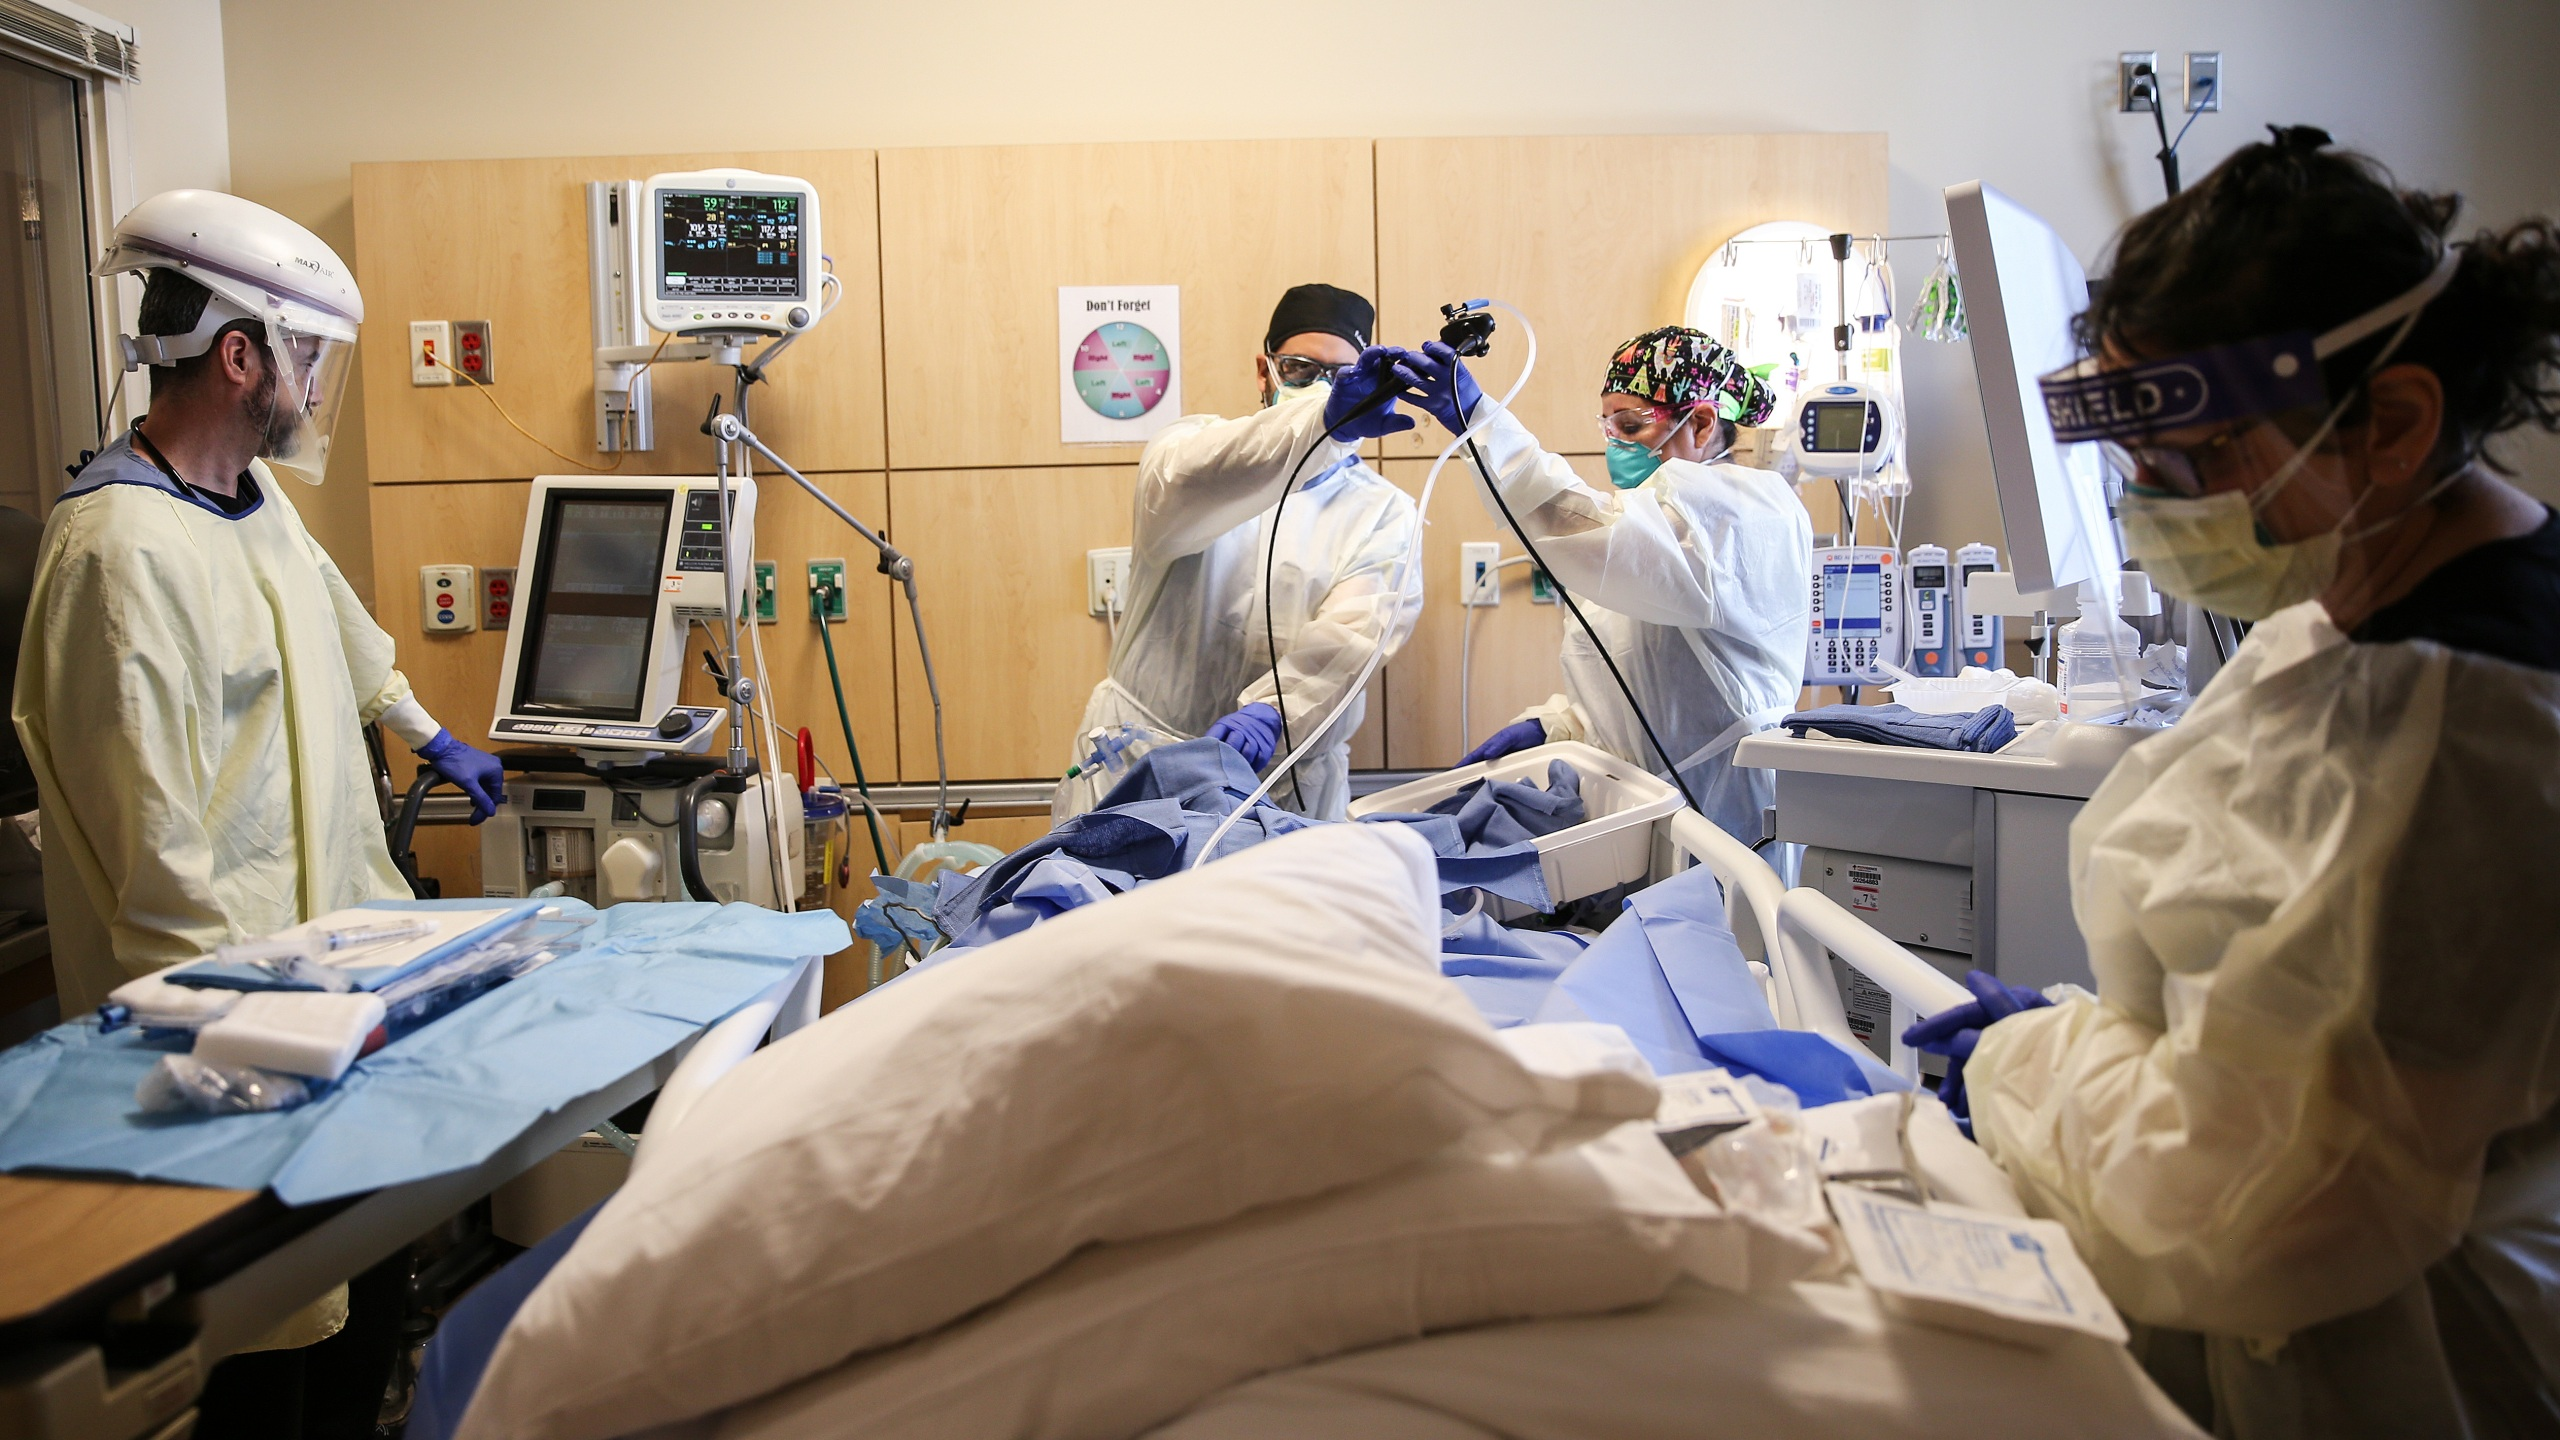 Clinicians perform a tracheostomy on a patient in a COVID-19 ICU in Mission Hills on Feb. 17, 2021 in Los Angeles. (Mario Tama/Getty Images)